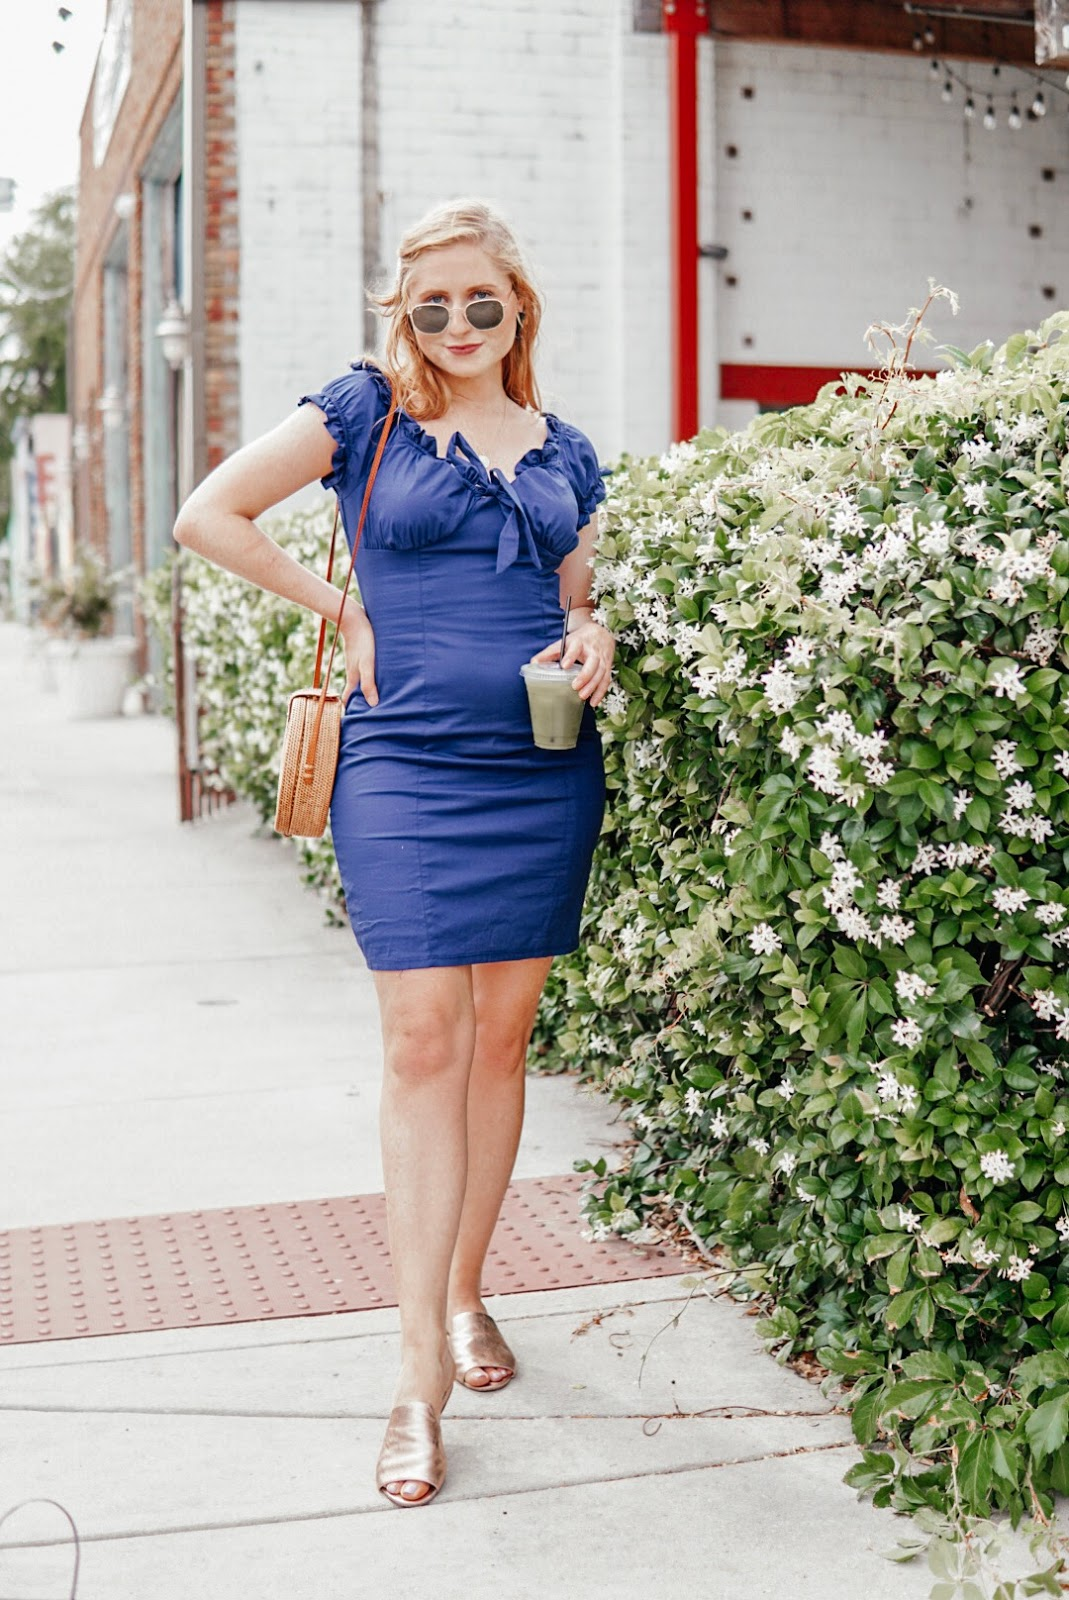 tampa blogger amanda burrows is wearing a navy ruffle dress from francesca's holding a matcha tea from Intermezzo Coffee. She is standing outside Green Bench Brewing. She is wearing Ray Ban Sunglasses and carrying a round rattan circle bag. She is smiling at the camera and standing next to jasmine flowers in St. Petersburg, Florida.